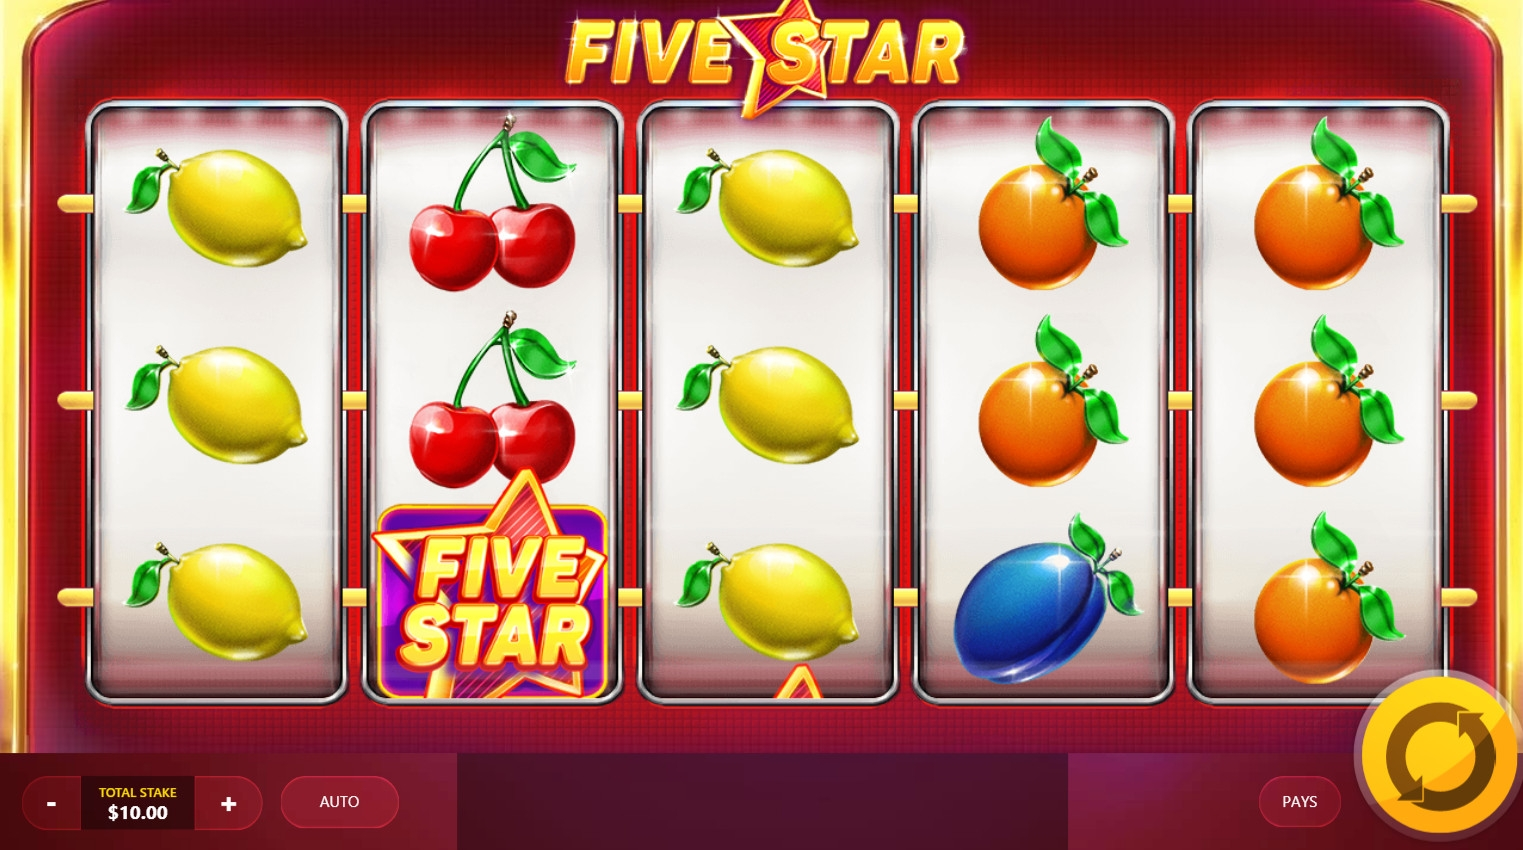 Five Star (Five Star) from category Slots